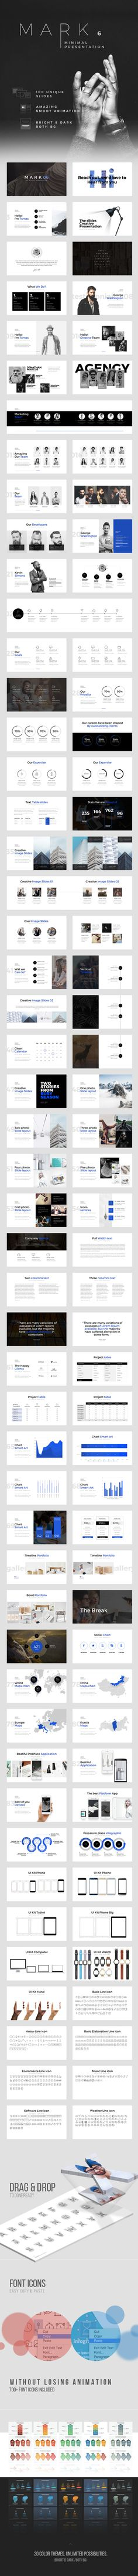 MARK06 Minimal Powerpoint Template • Only available here! → https://graphicriver.net/item/mark06minimal-powerpoint-template/17168654?ref=pxcr